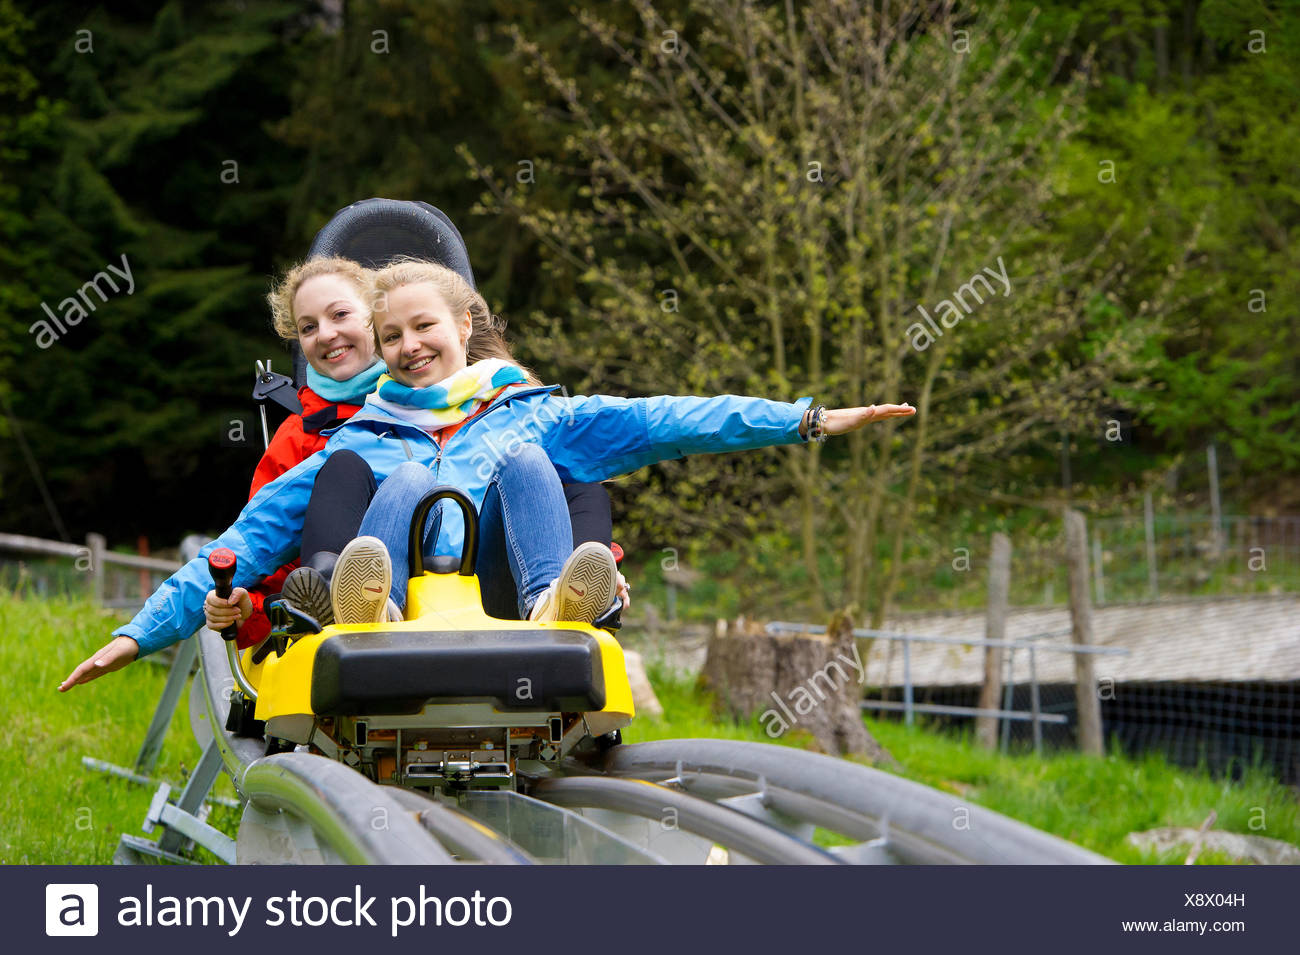 Young women on a summer toboggan run, Steinwasenpark in Oberried, Black Forest, Baden-Württemberg, Germany - Stock Image